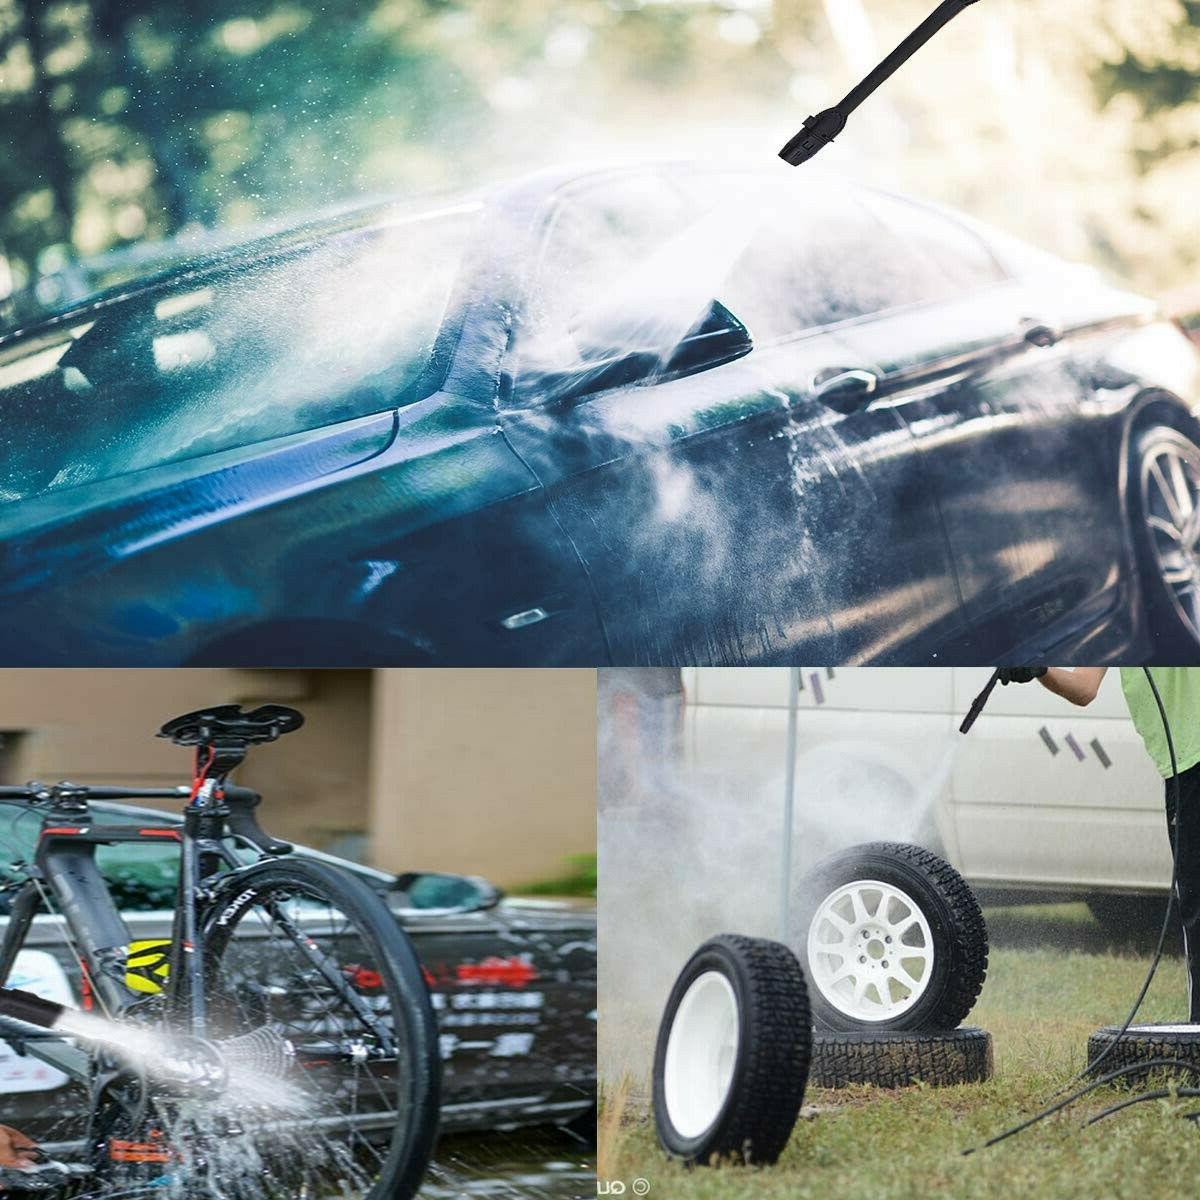 1800W 2030 Pressure Washer Cleaner With Hose